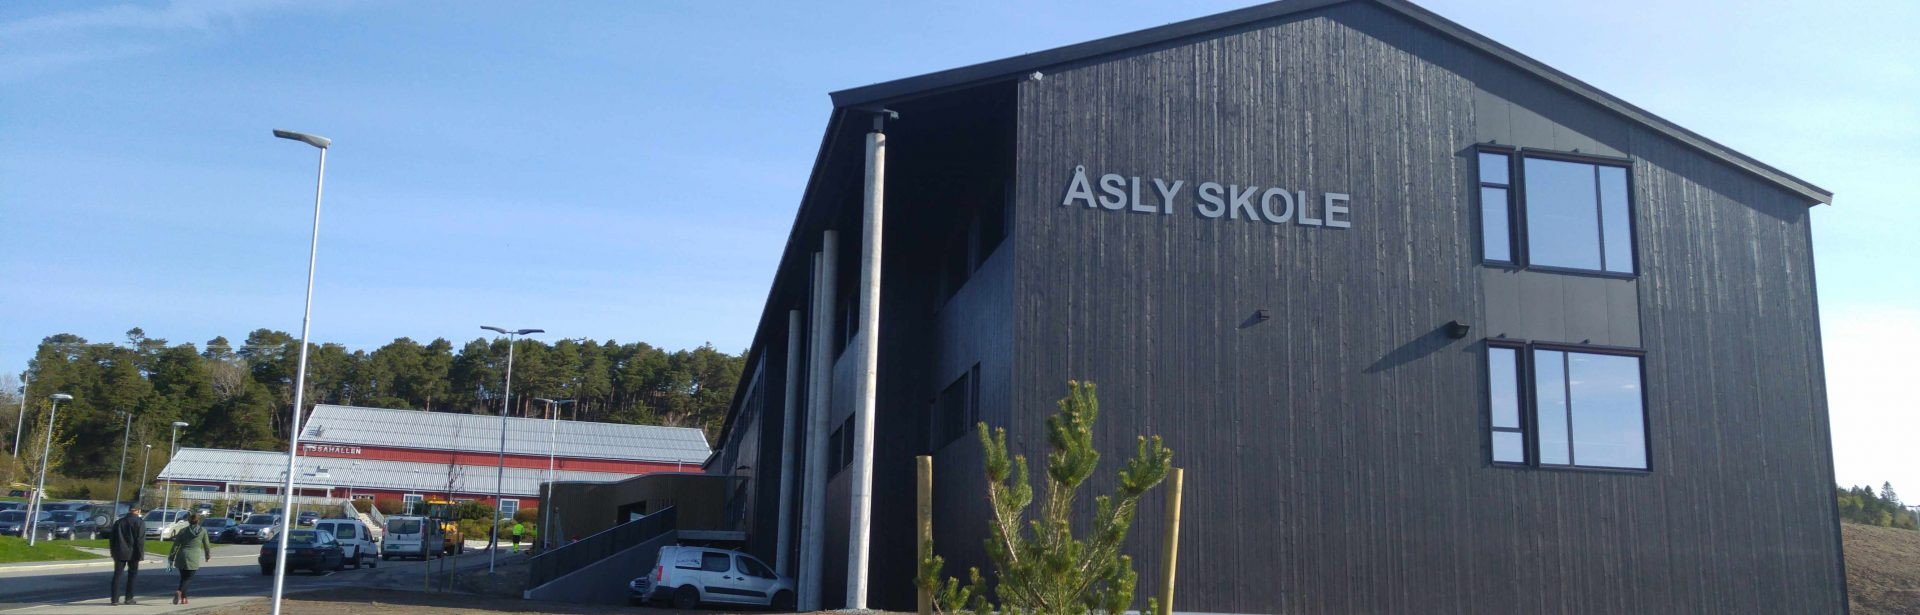 Elpro Group Åsly-Skole